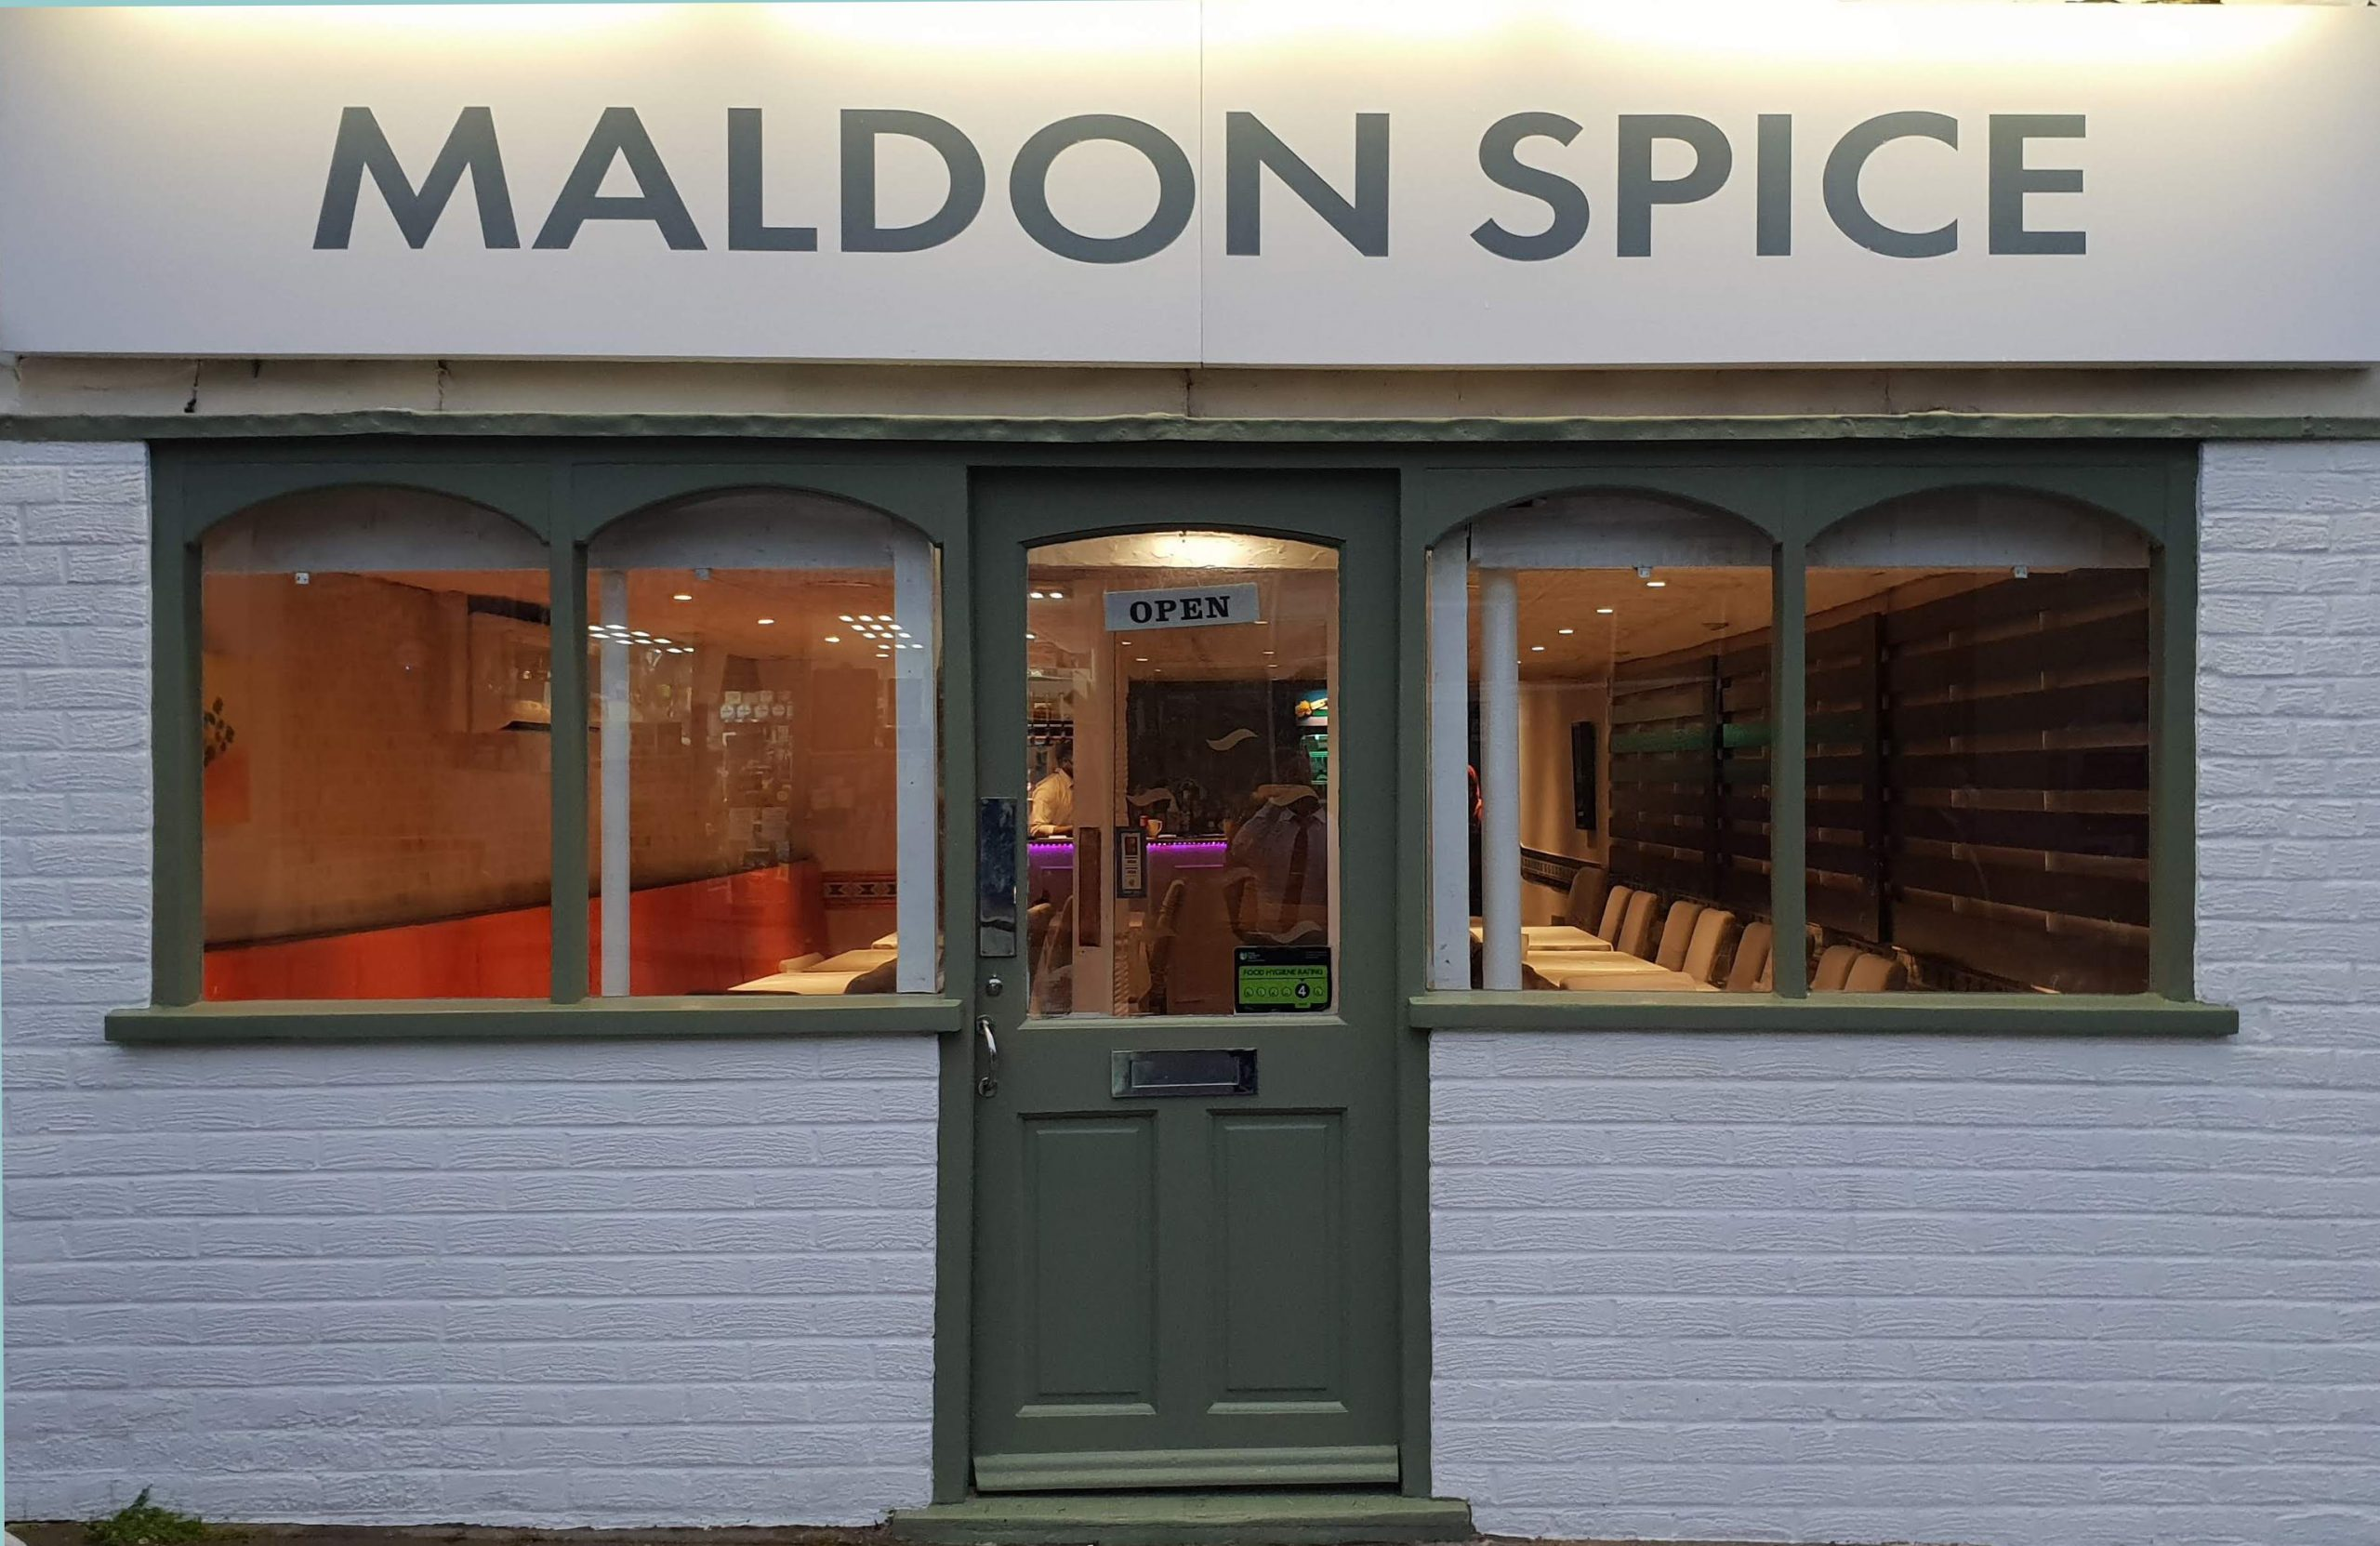 Maldon get's more spice in their lives!